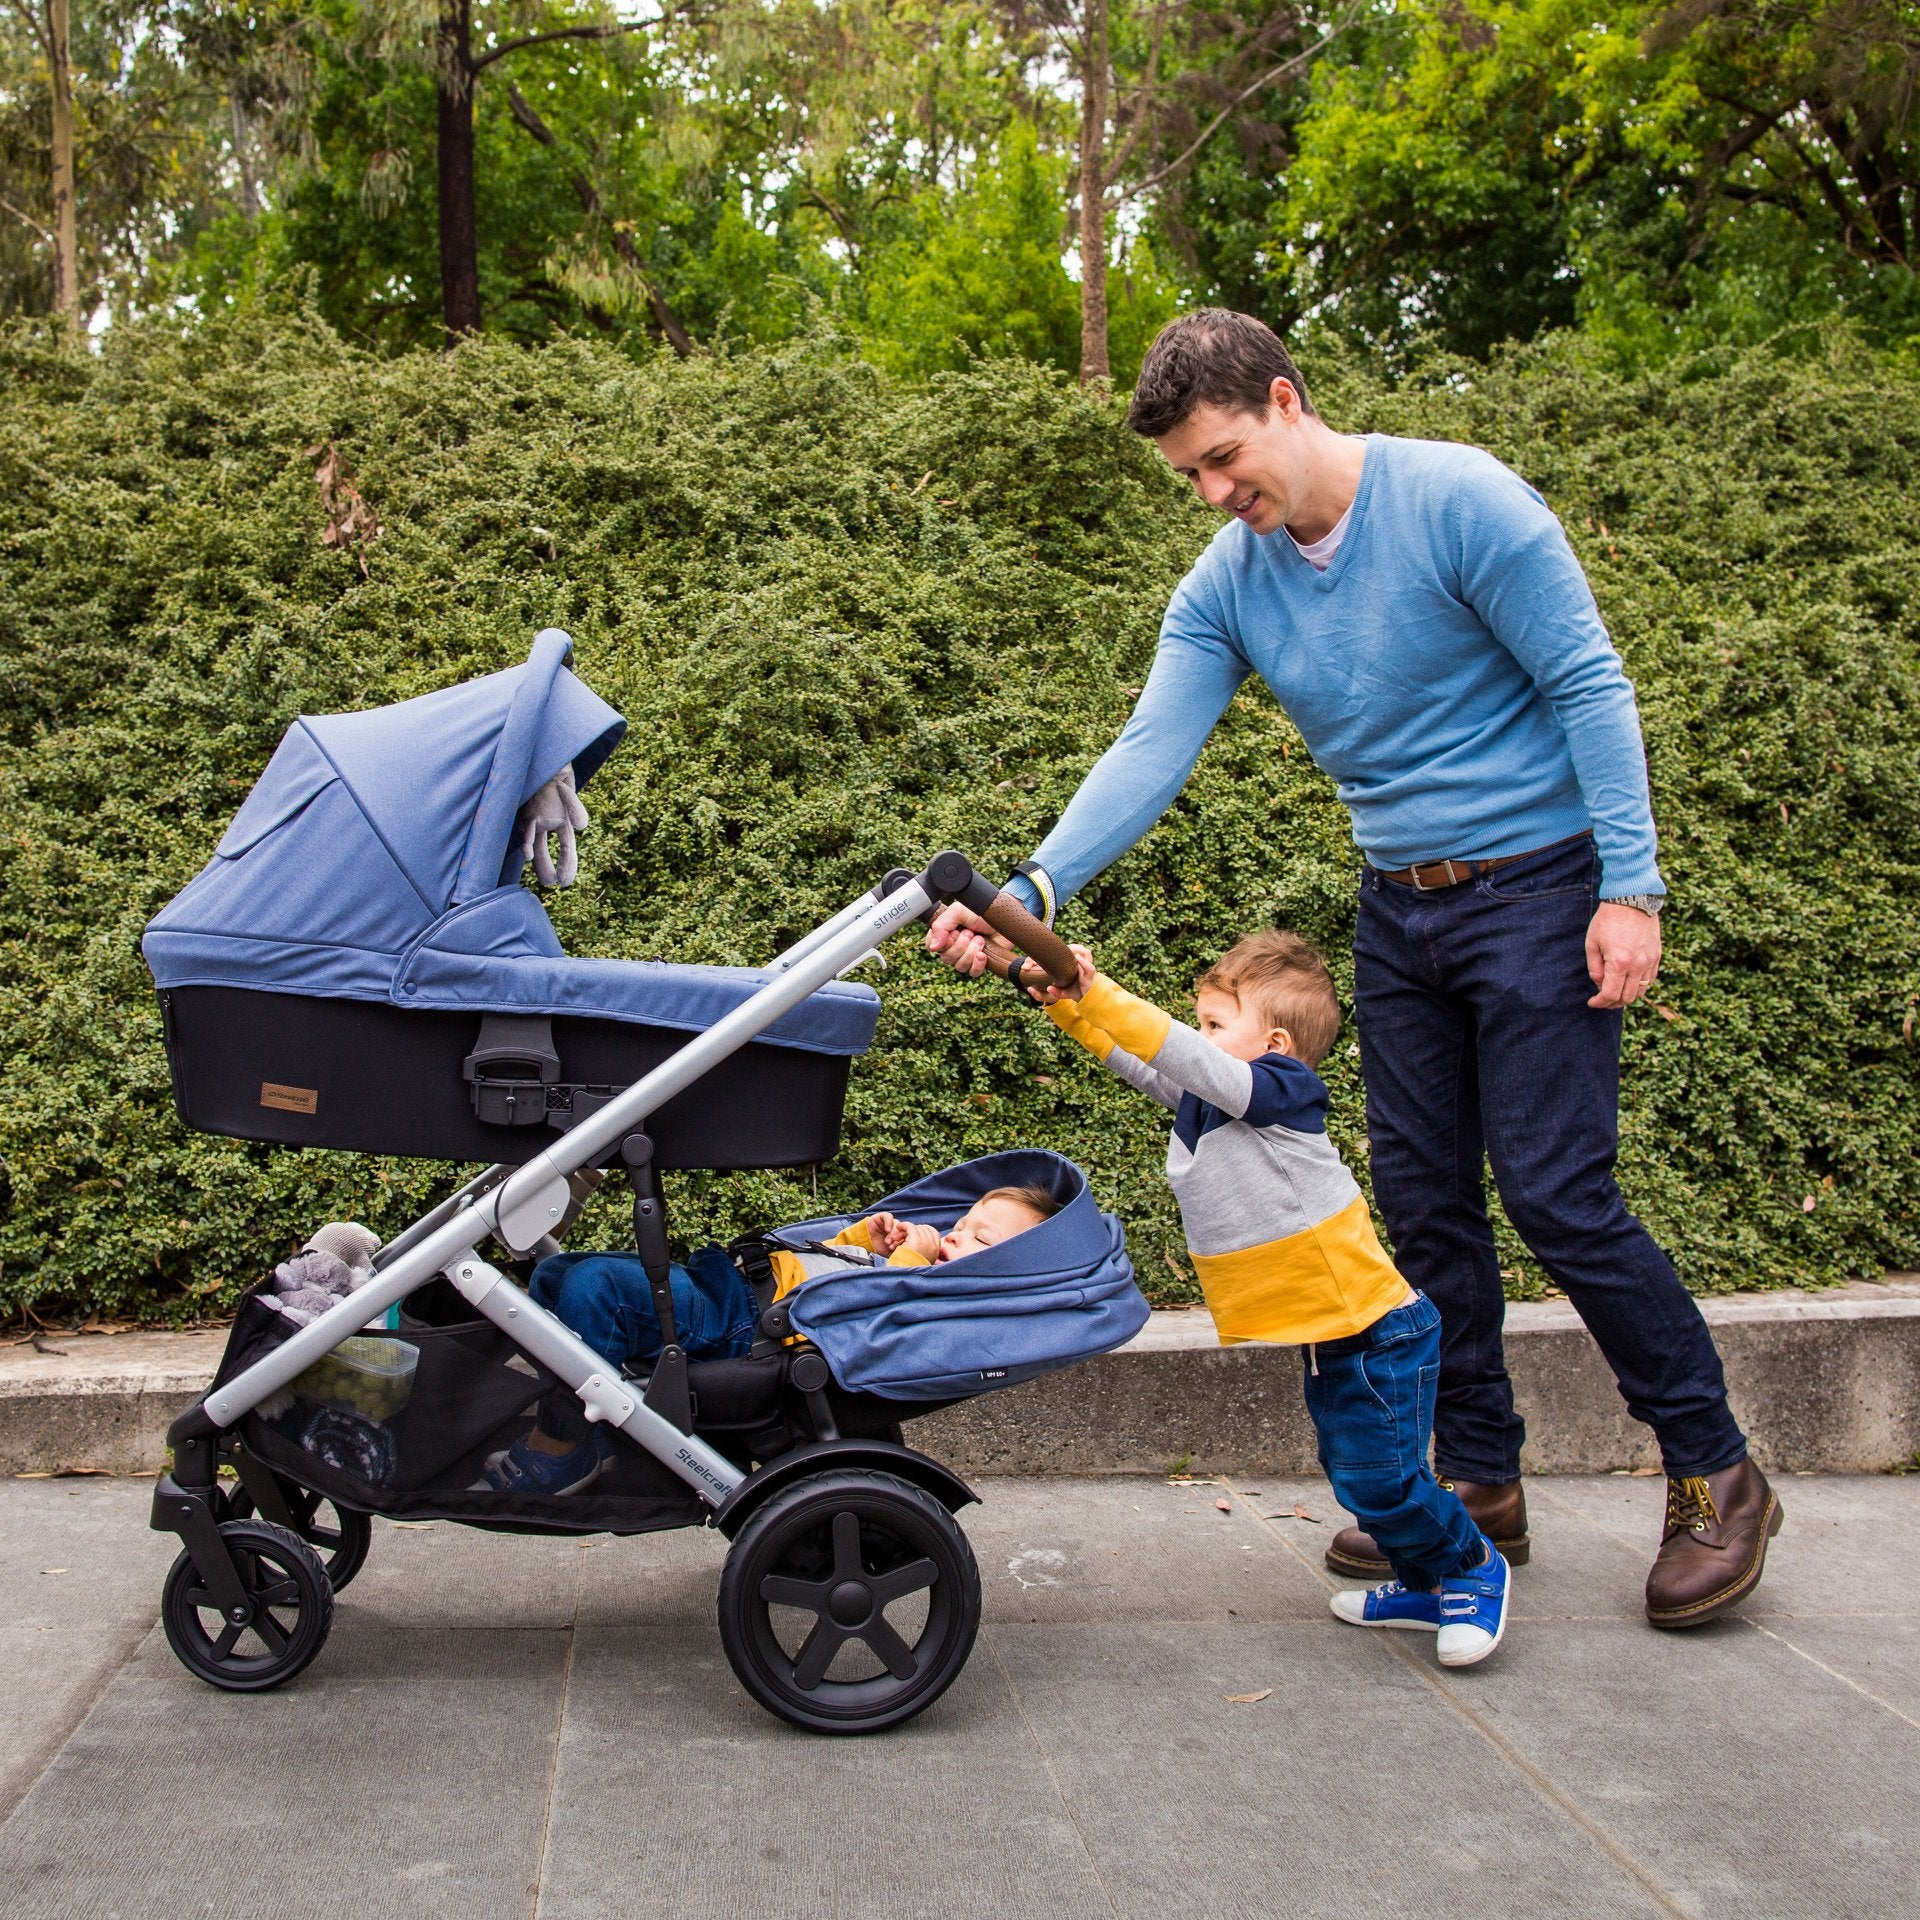 Steelcraft prams and strollers